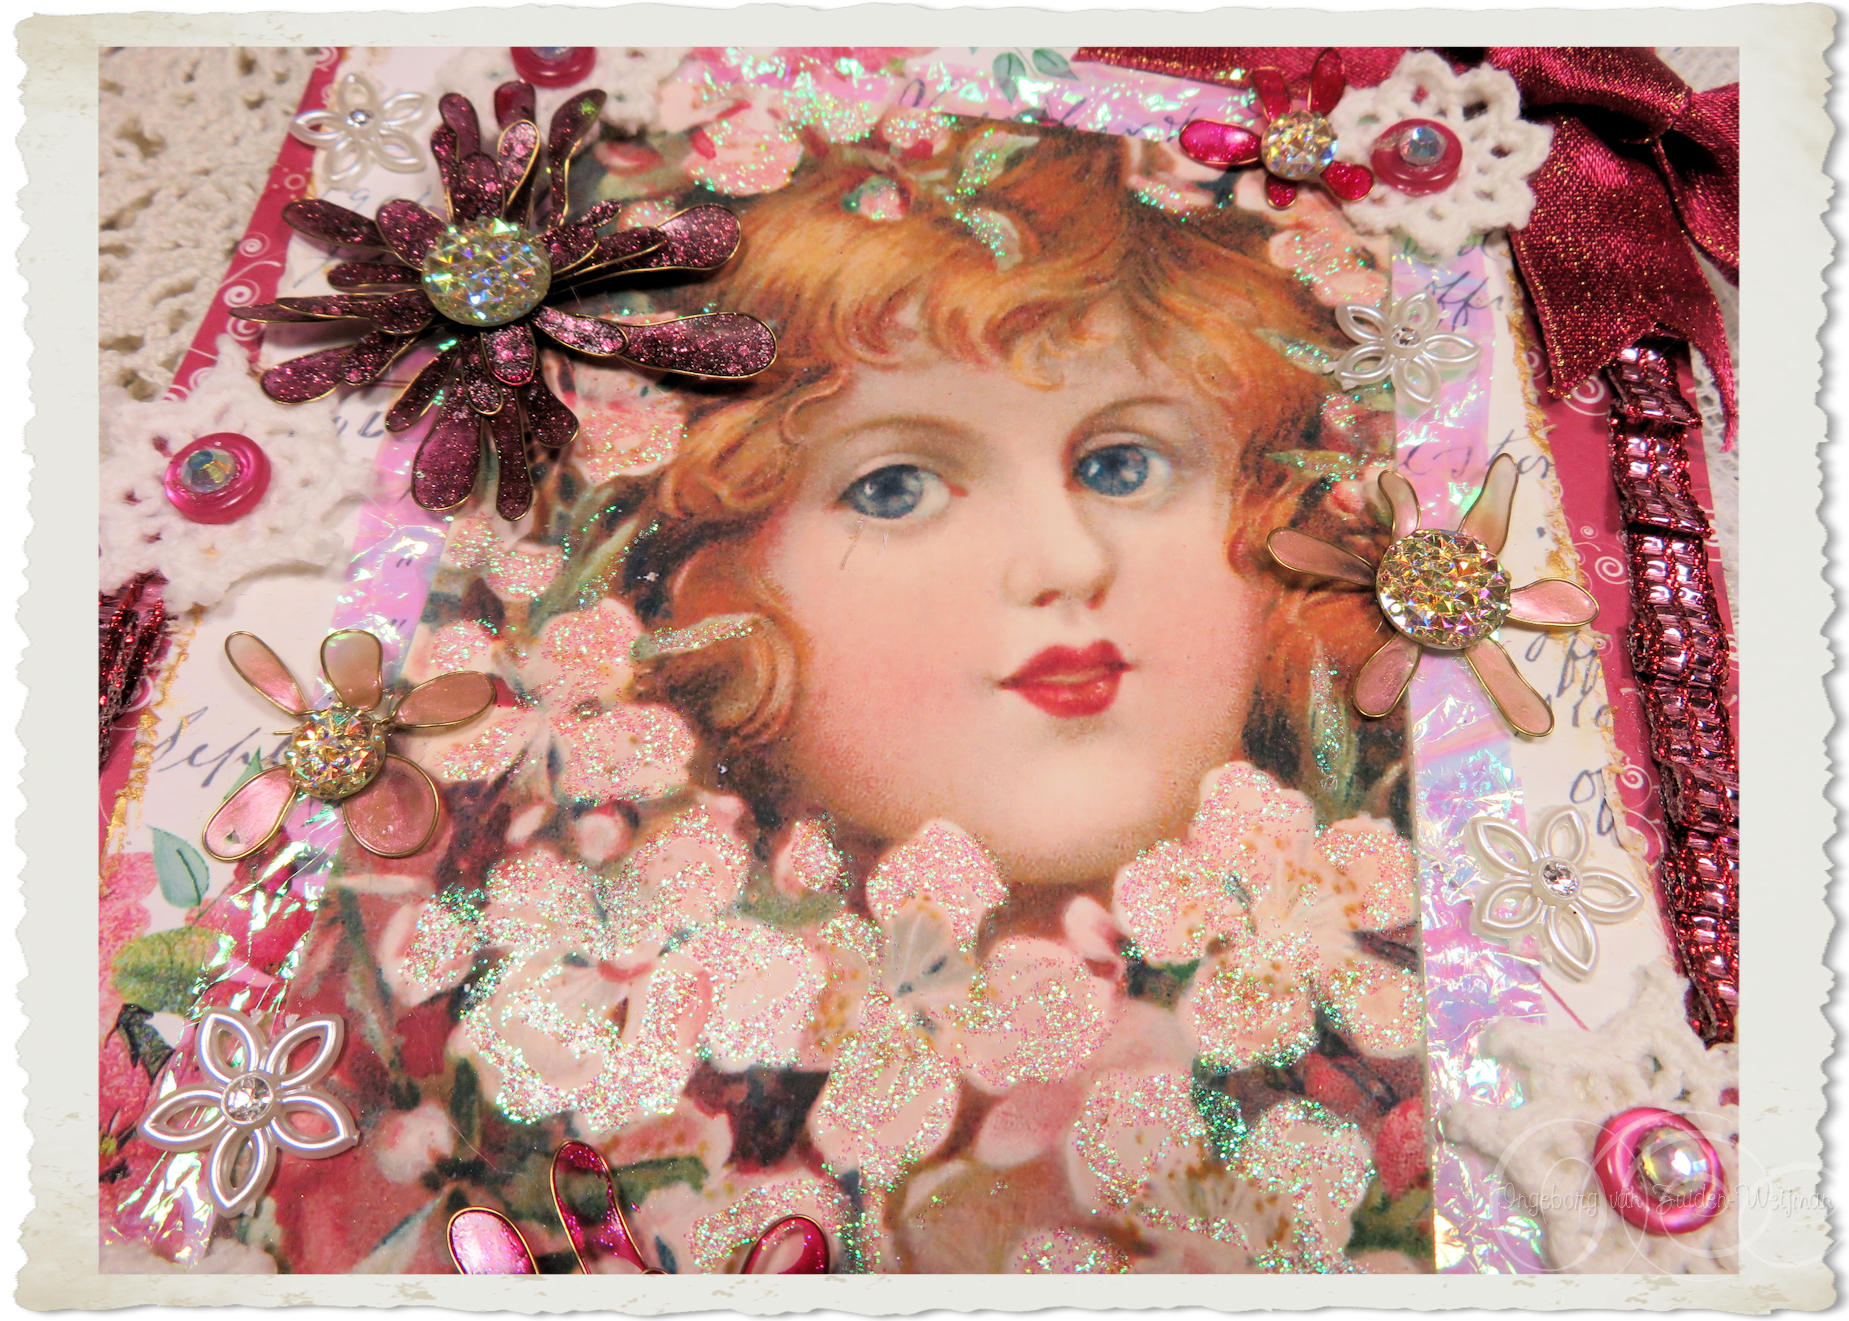 Victorian angel notecard hanger for Christmas by Ingeborg van Zuiden